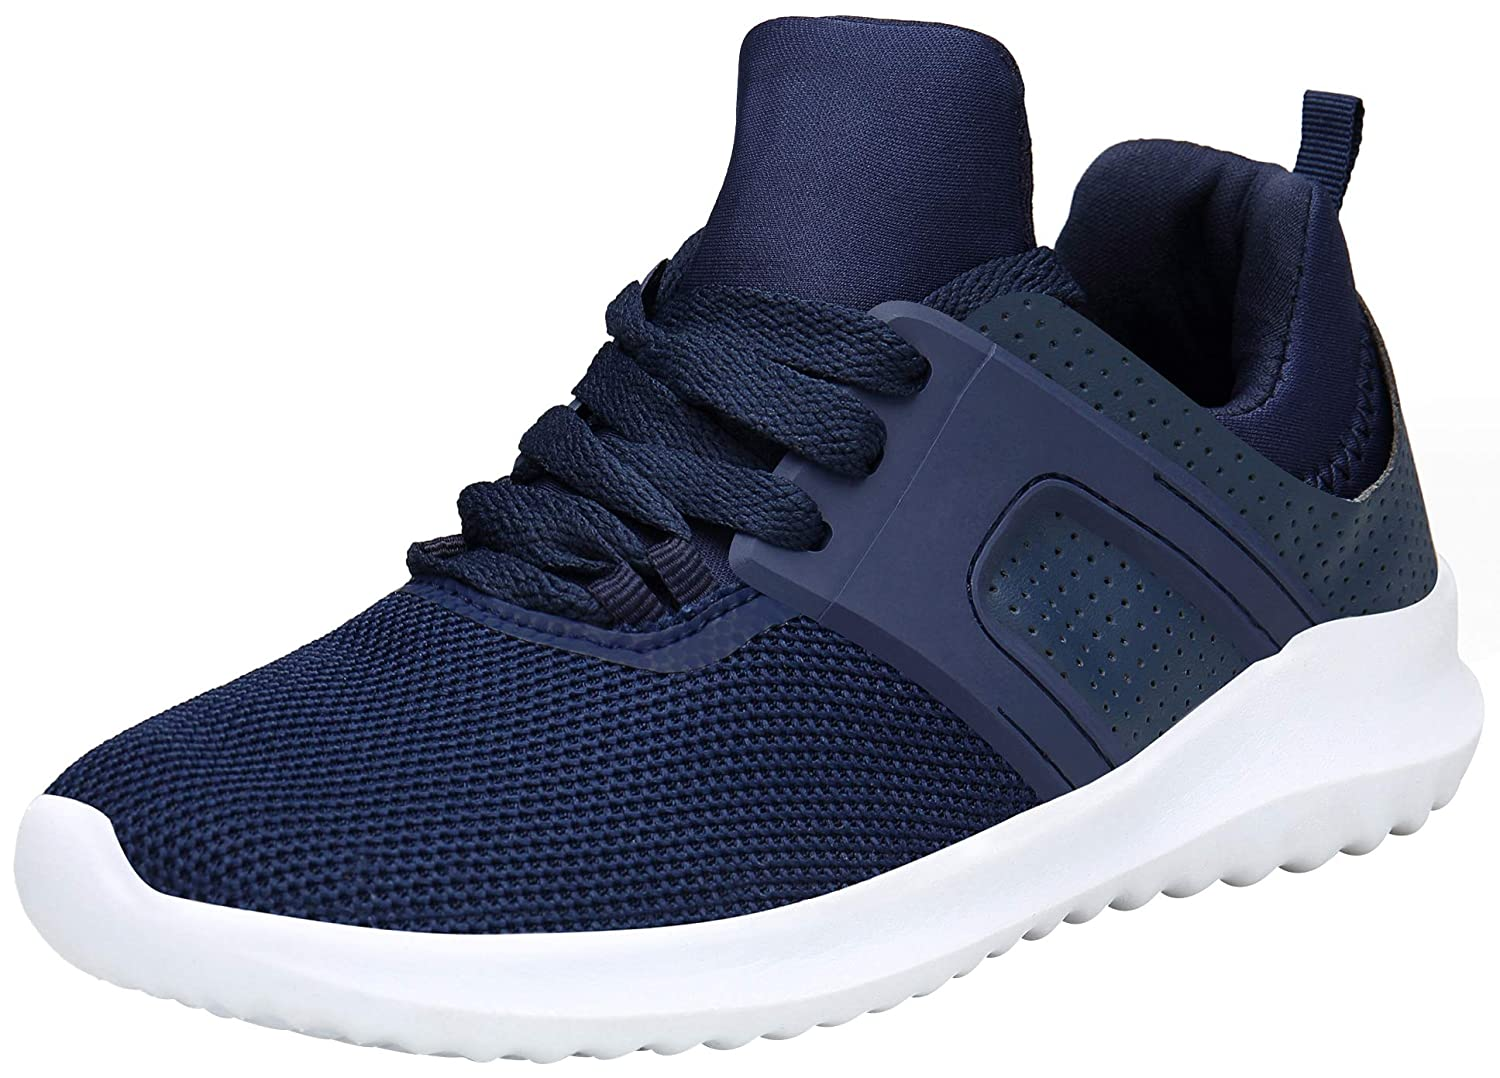 Vedaxin Chaussures de Sport Femme Homme Baskets Mode Lacets Chaussures Running Fitness...